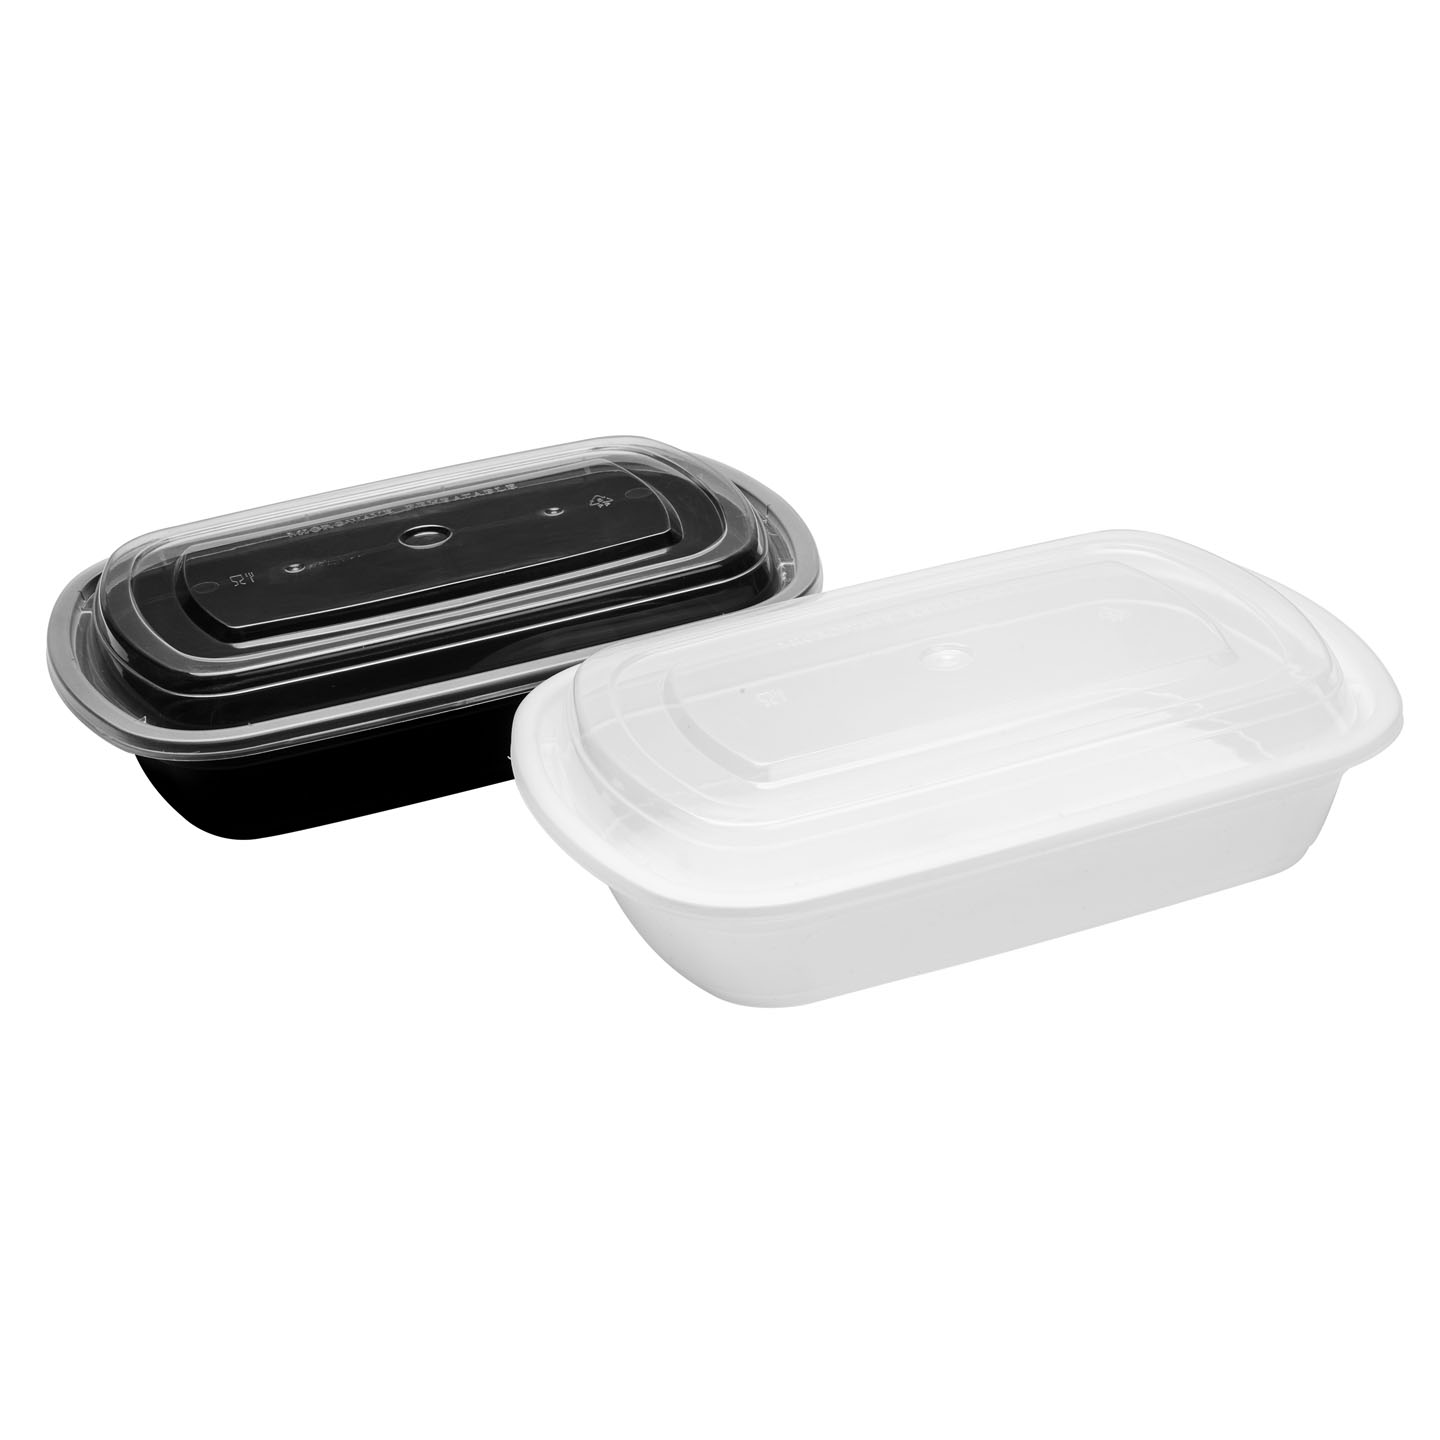 WY TRAYS - C8630 Black+White - Combo